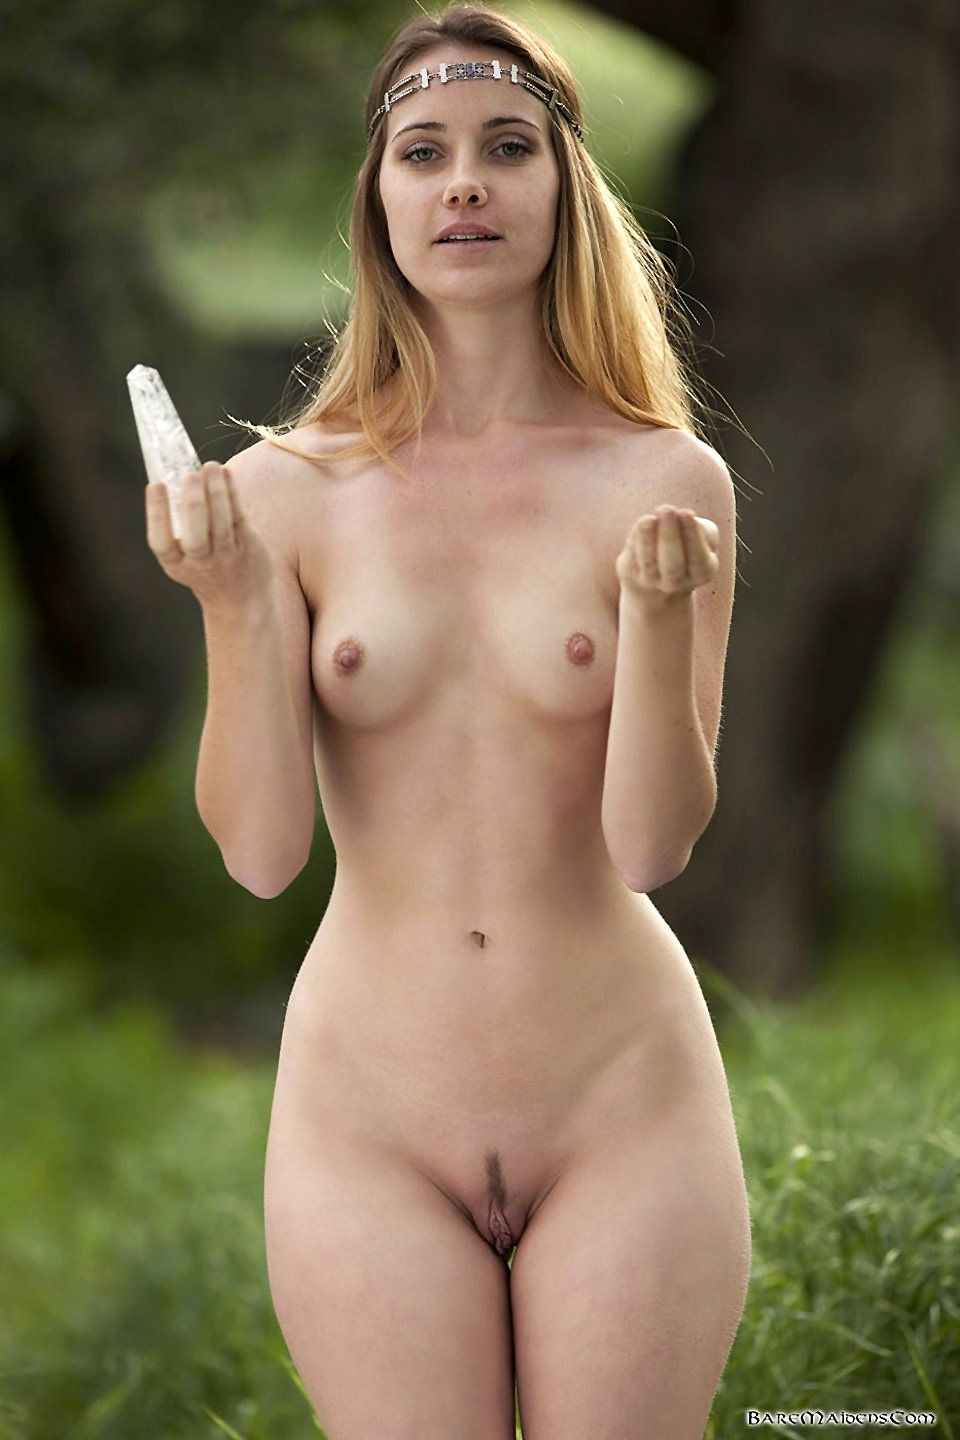 Young girls in top pics, experiencing nudity and